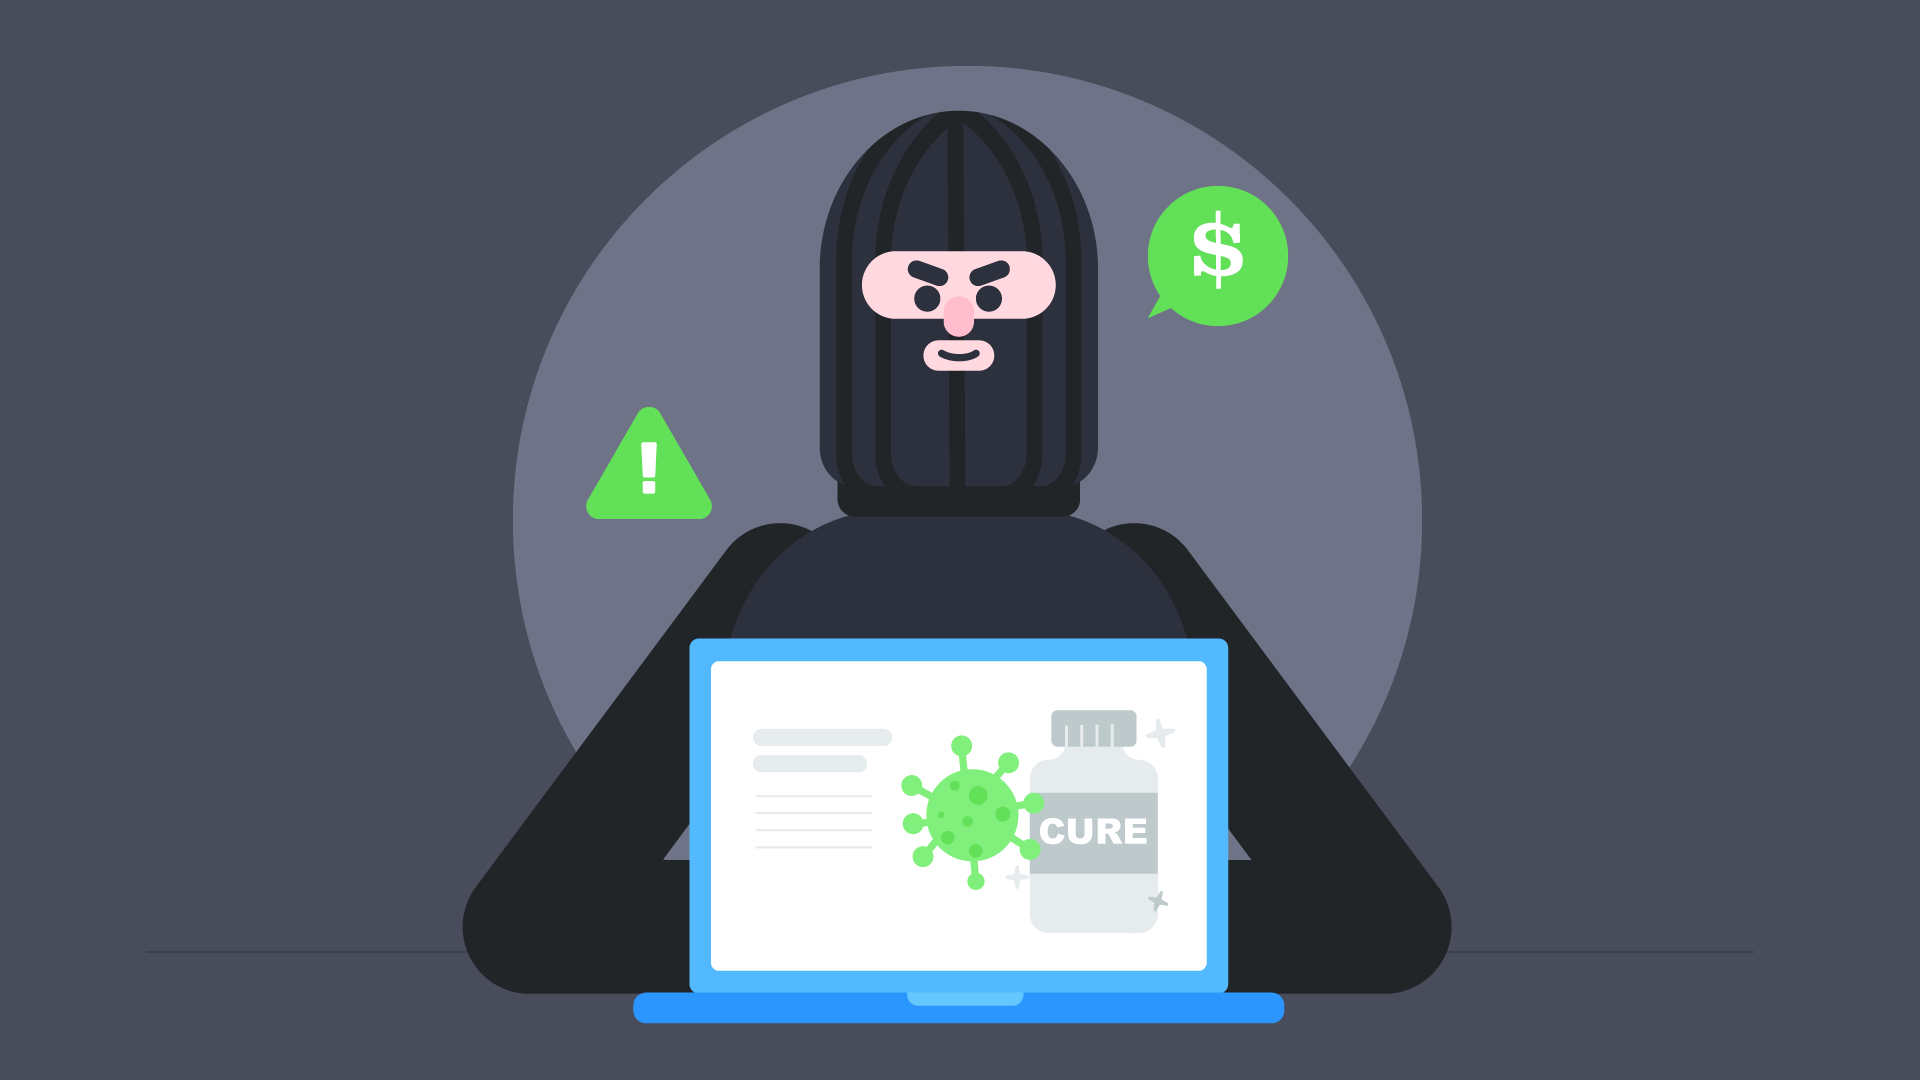 A scammer hides behind an open laptop, claiming to have a cure for COVID-19.